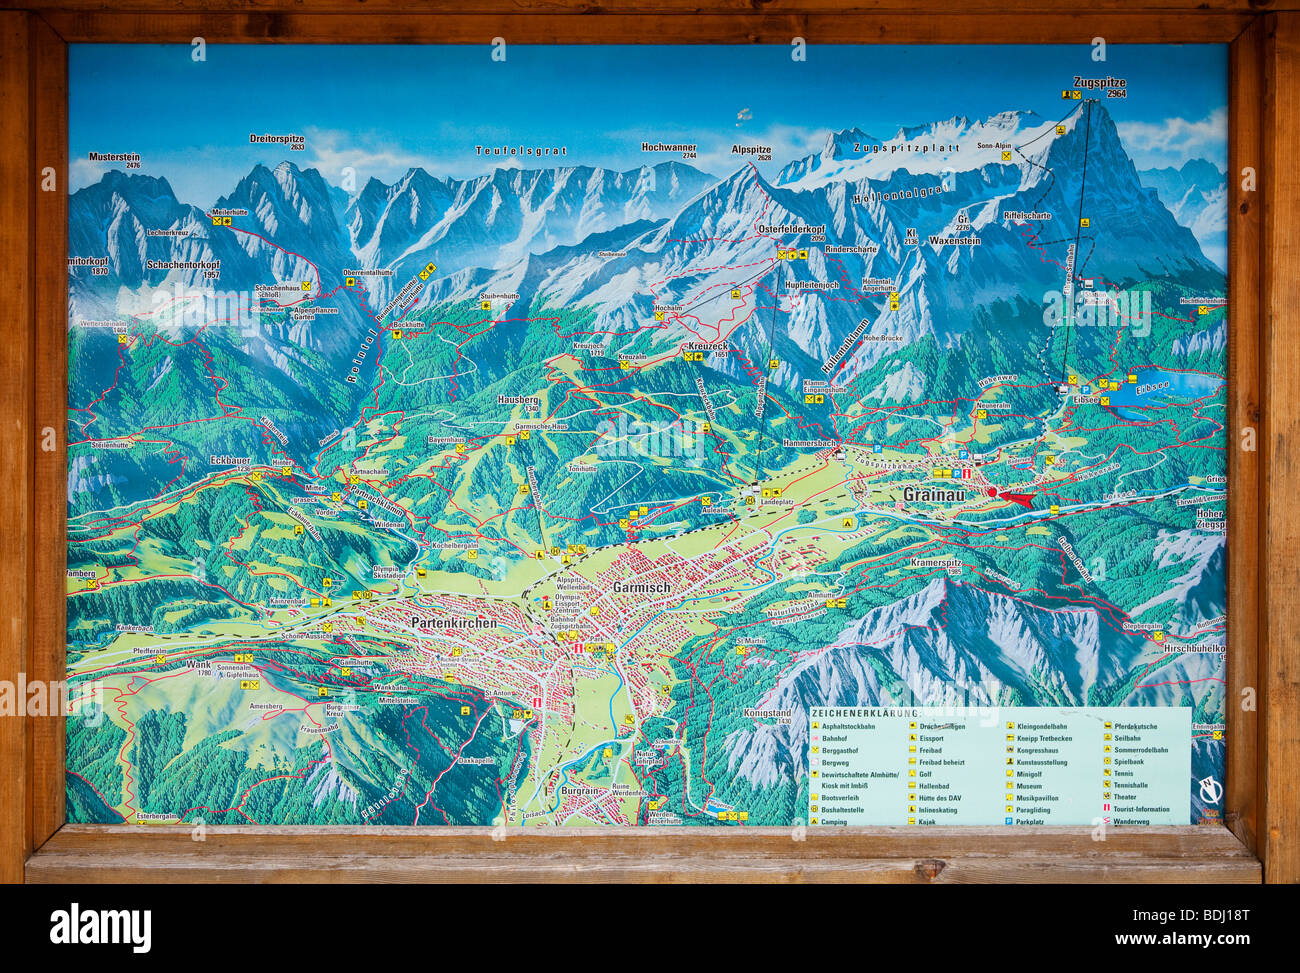 Tourist information map in the town of Grainau in the Bavarian Alps ...